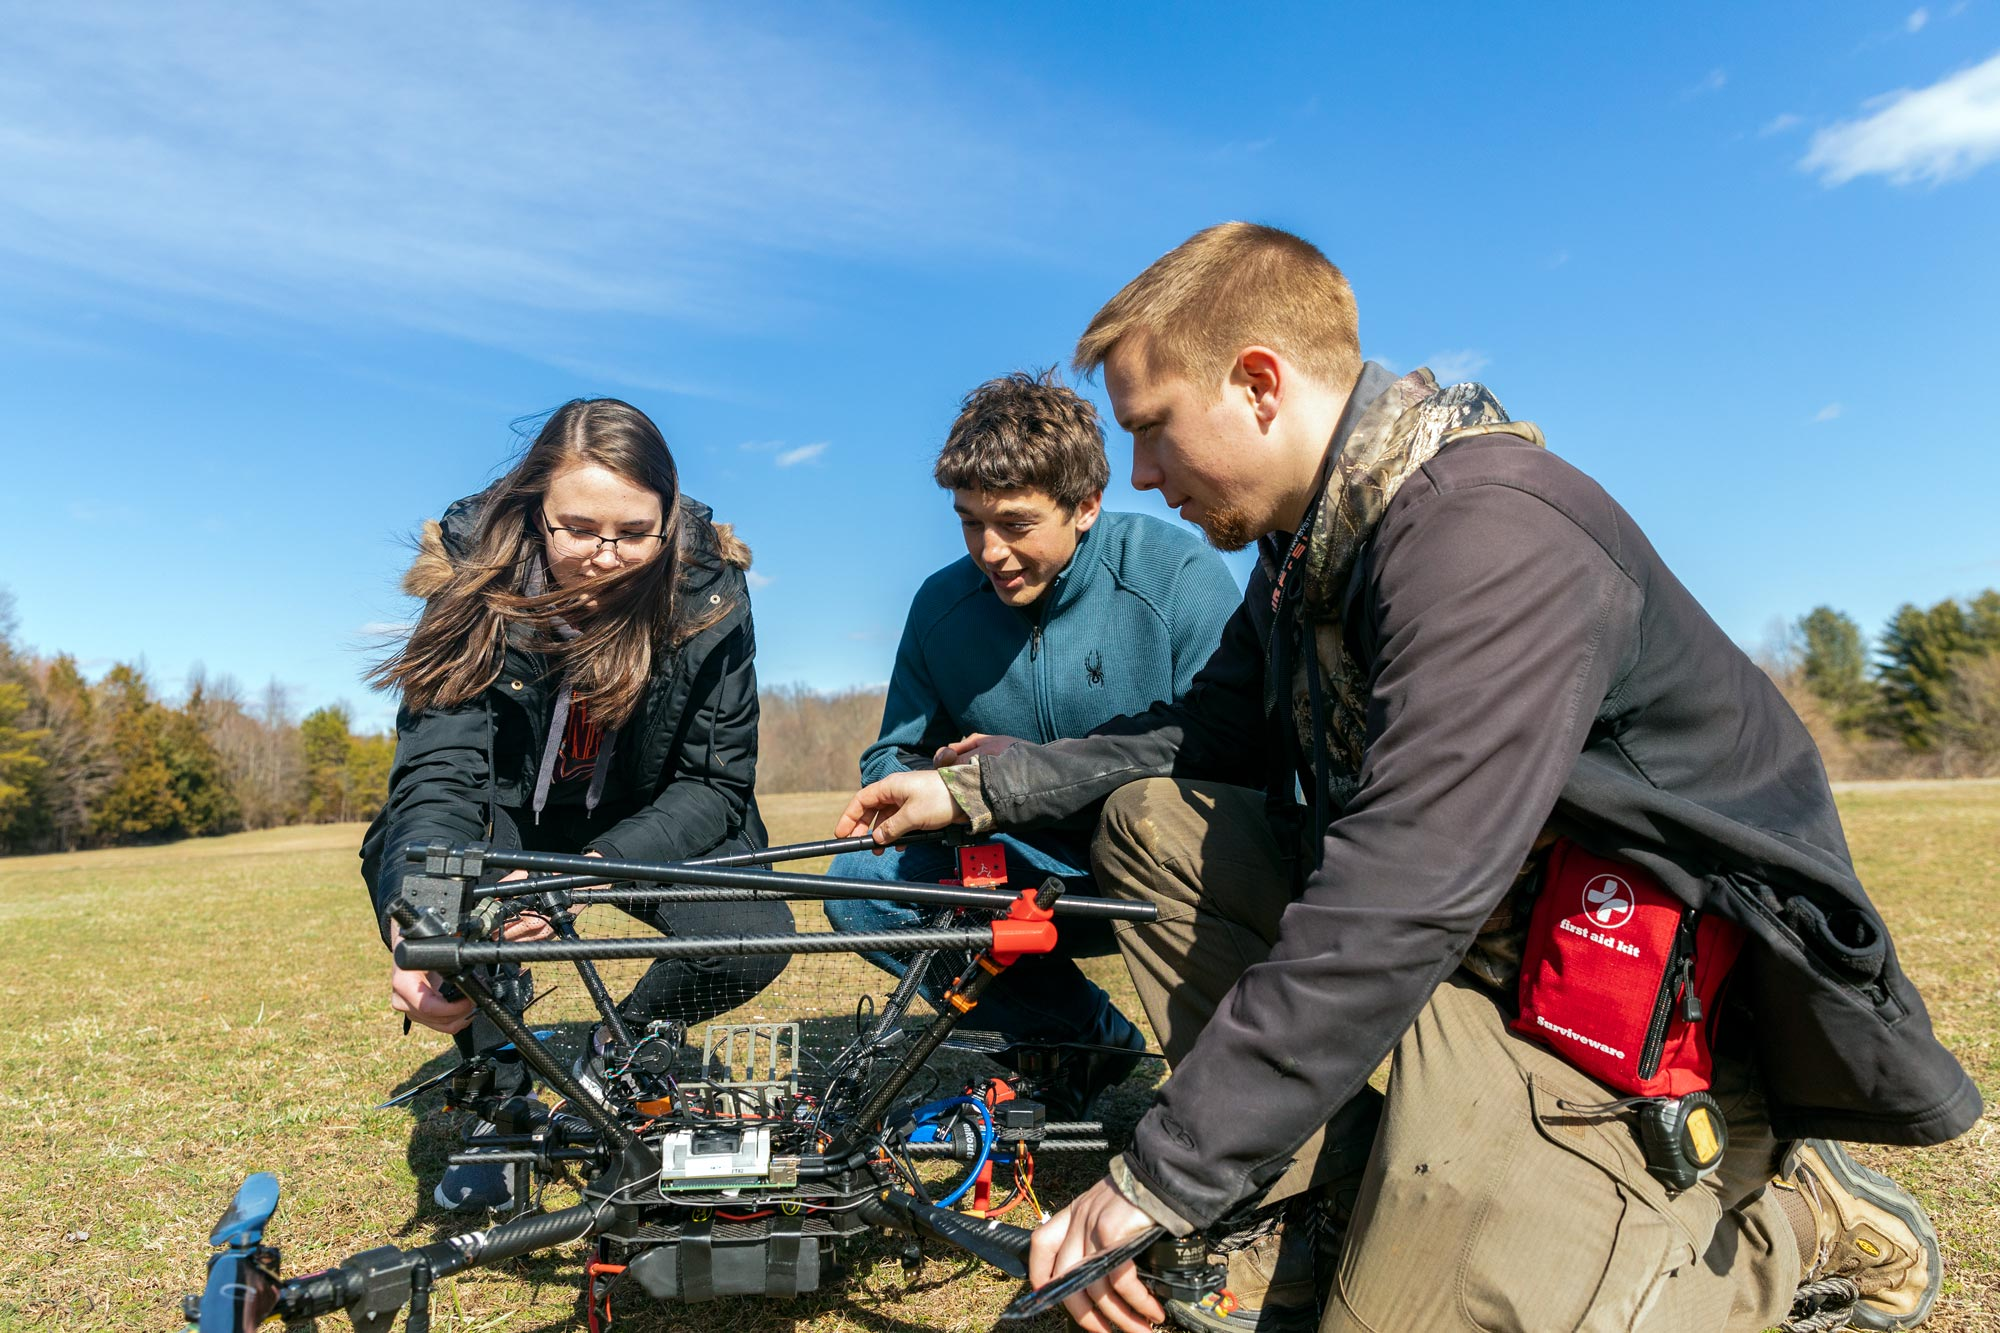 Students from the autonomous robotics team test an aerial drone on UVA's Milton Field in preparation for an international robotic competition.